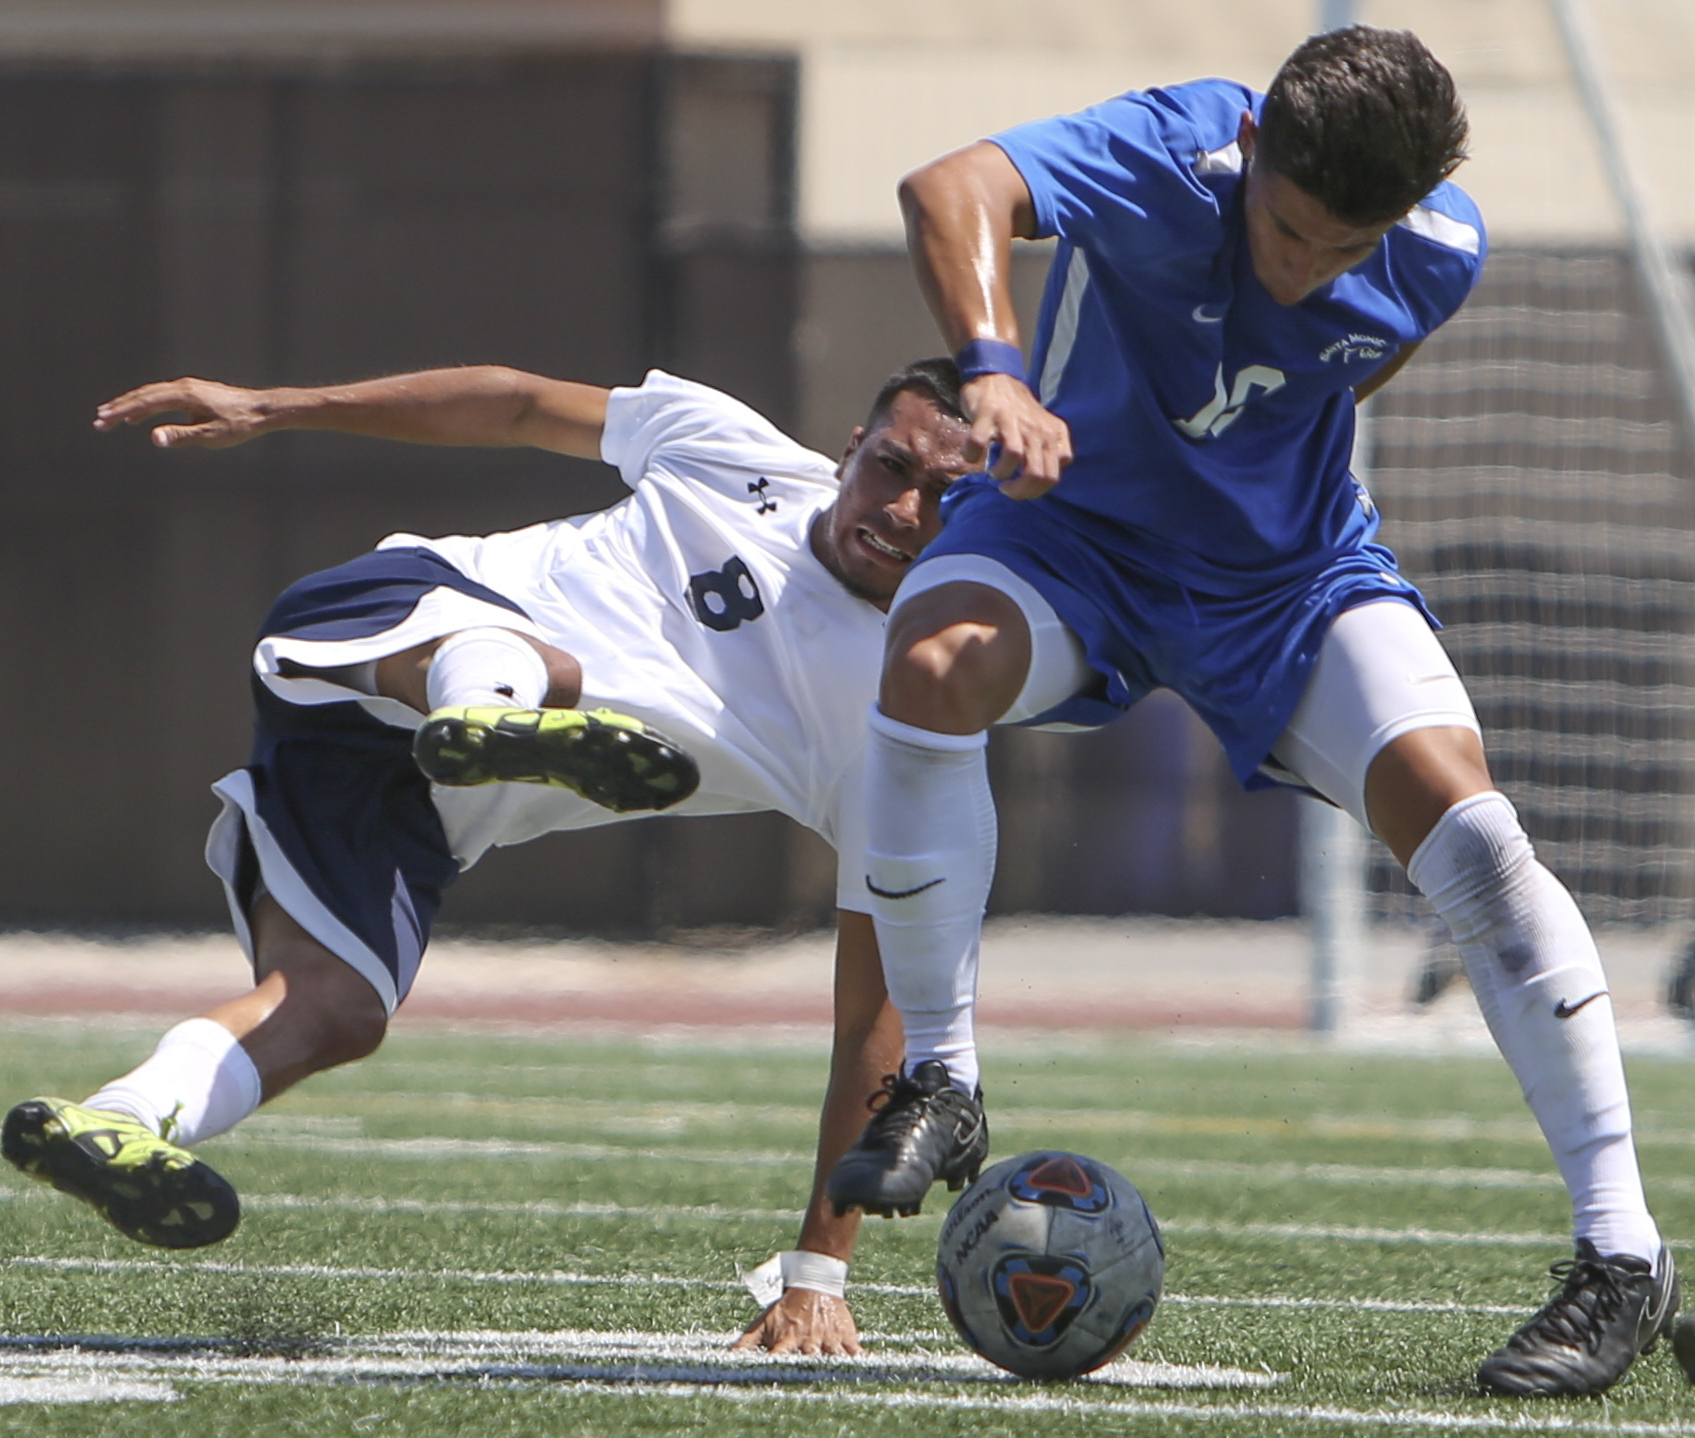 Oscar Palacios (10) of the Santa Monica College Corsairs mens soccer team fights for possesion of the ball against Everardo Candelas (8) of the El Camino College Warriors, Friday, September 1st, 2017, at the Santa Monica College Main Campus field in Santa Monica, California. The Corsairs beat The Warriors 5-1. (Daniel Bowyer/Corsair Staff)